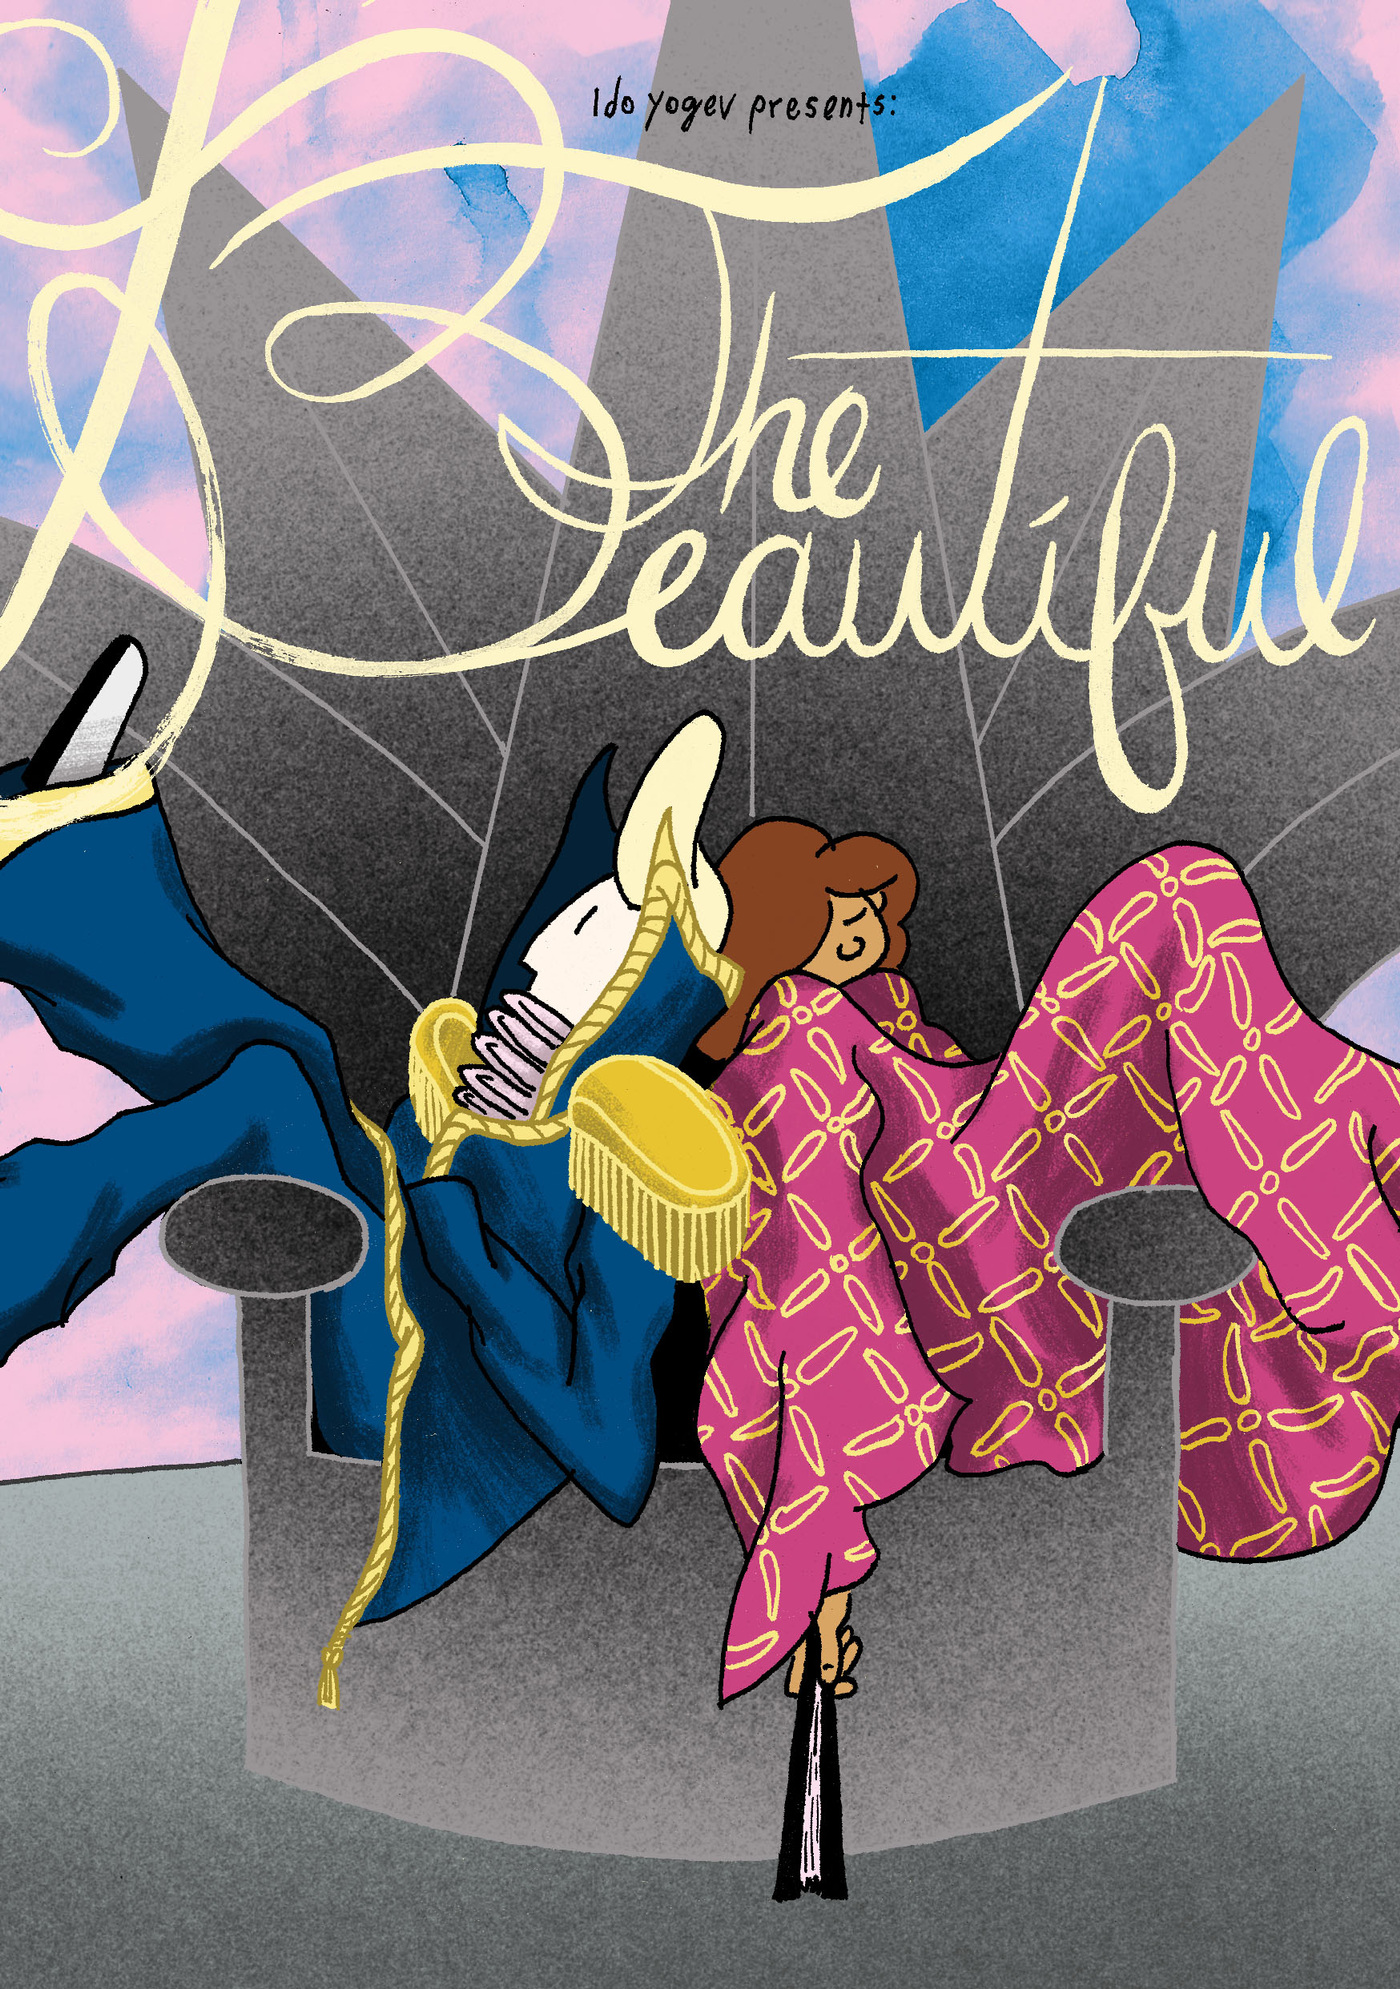 Well how are ya - The Beautiful- A Story of Sad Teens and Elven Queens. Read from the beginning here: https://thebeautifulcomic.tumblr.com/post/180749067204